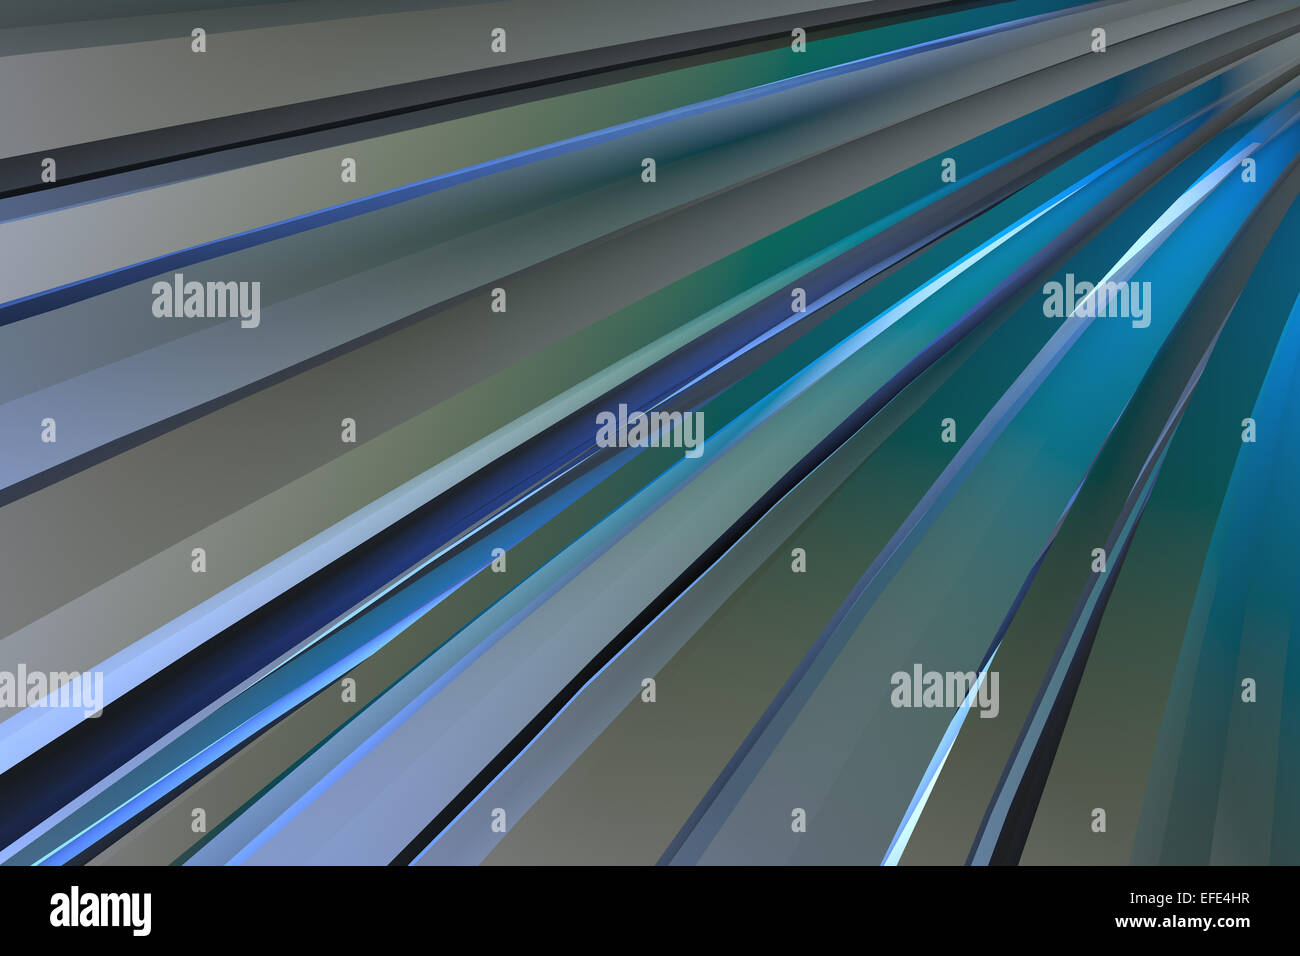 Abstract lines 3d generated background - Stock Image